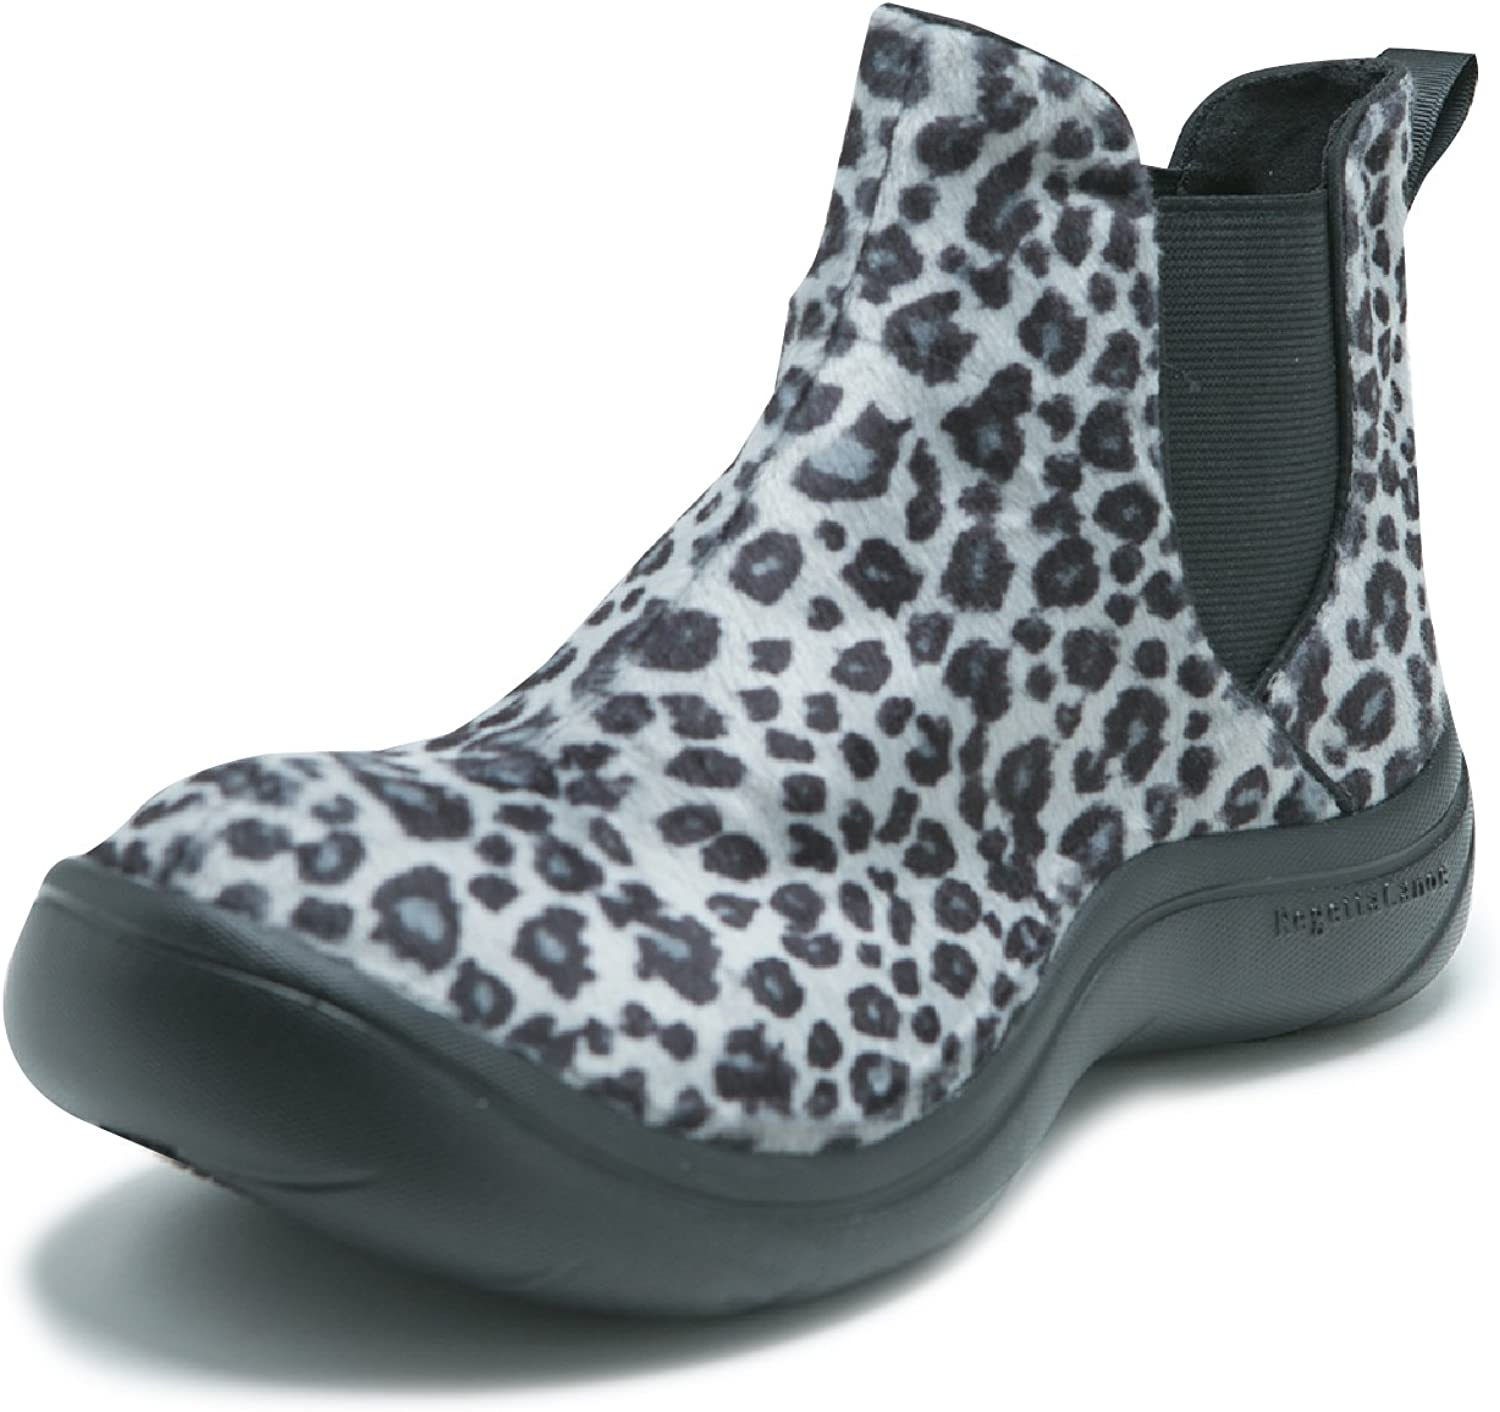 RegettaCanoe SAFARI  Handcrafted Vegan Leather Pull Up Leopard Boots for Women